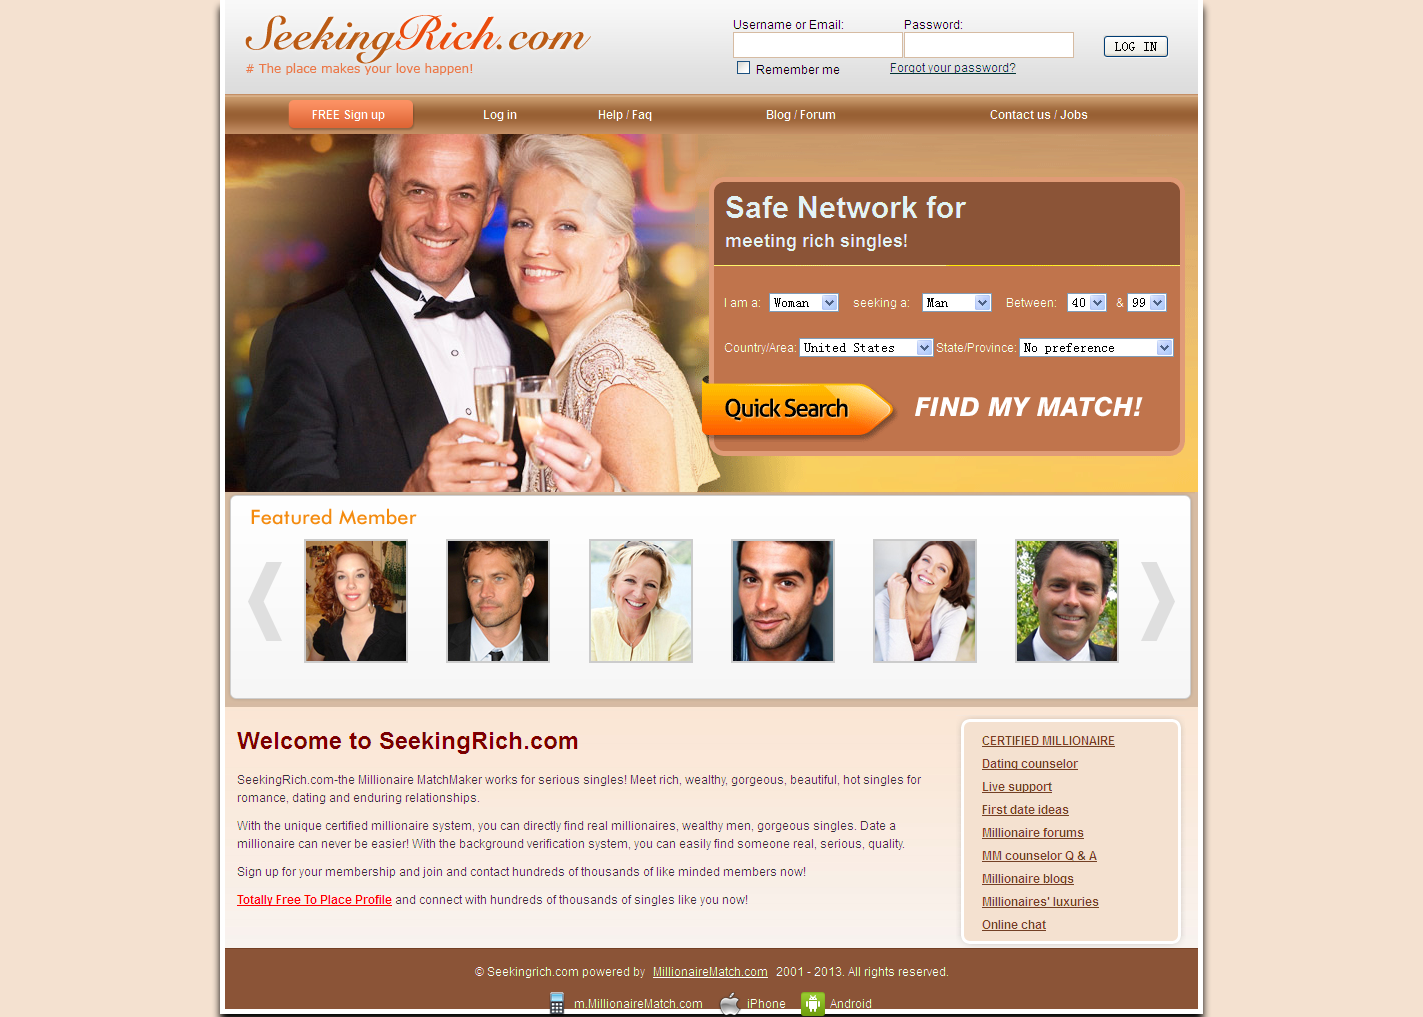 crosby singles dating site Check out this in-depth review of the online dating service singlesnet and how you can join, brought to you by the dating experts at singlescom.